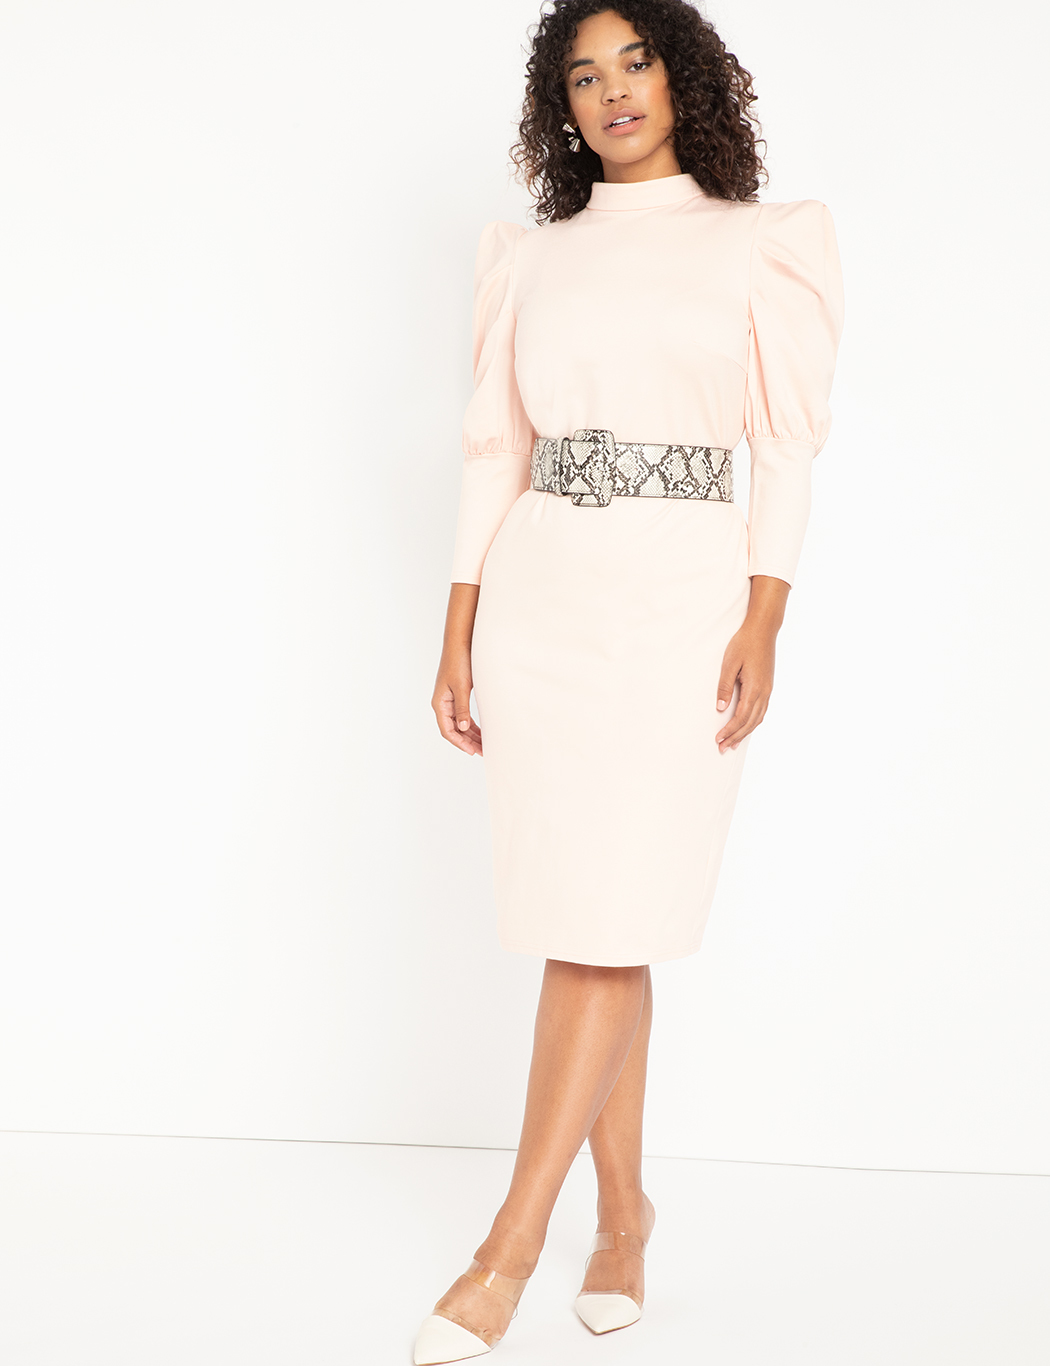 Turtleneck Bodycon With Puff Sleeves